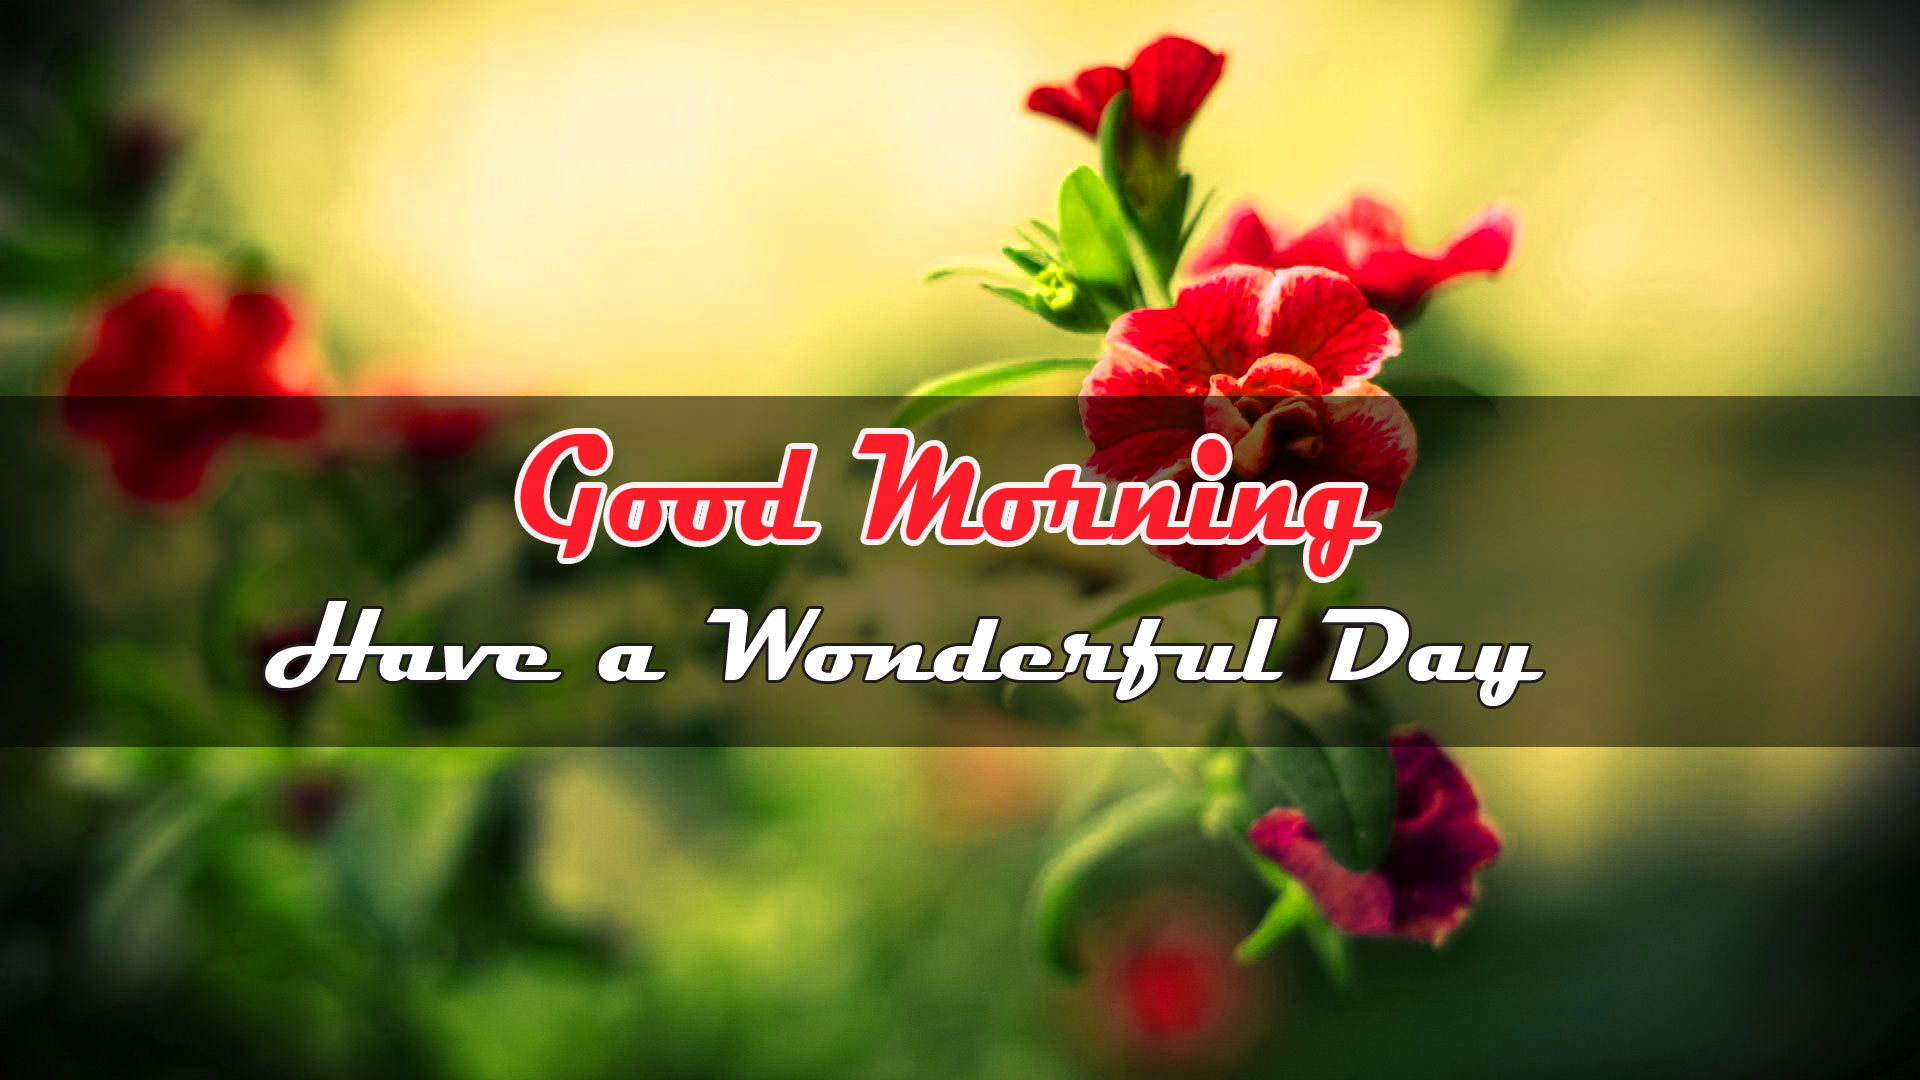 Flower good morning Wallpaper Download for Friend